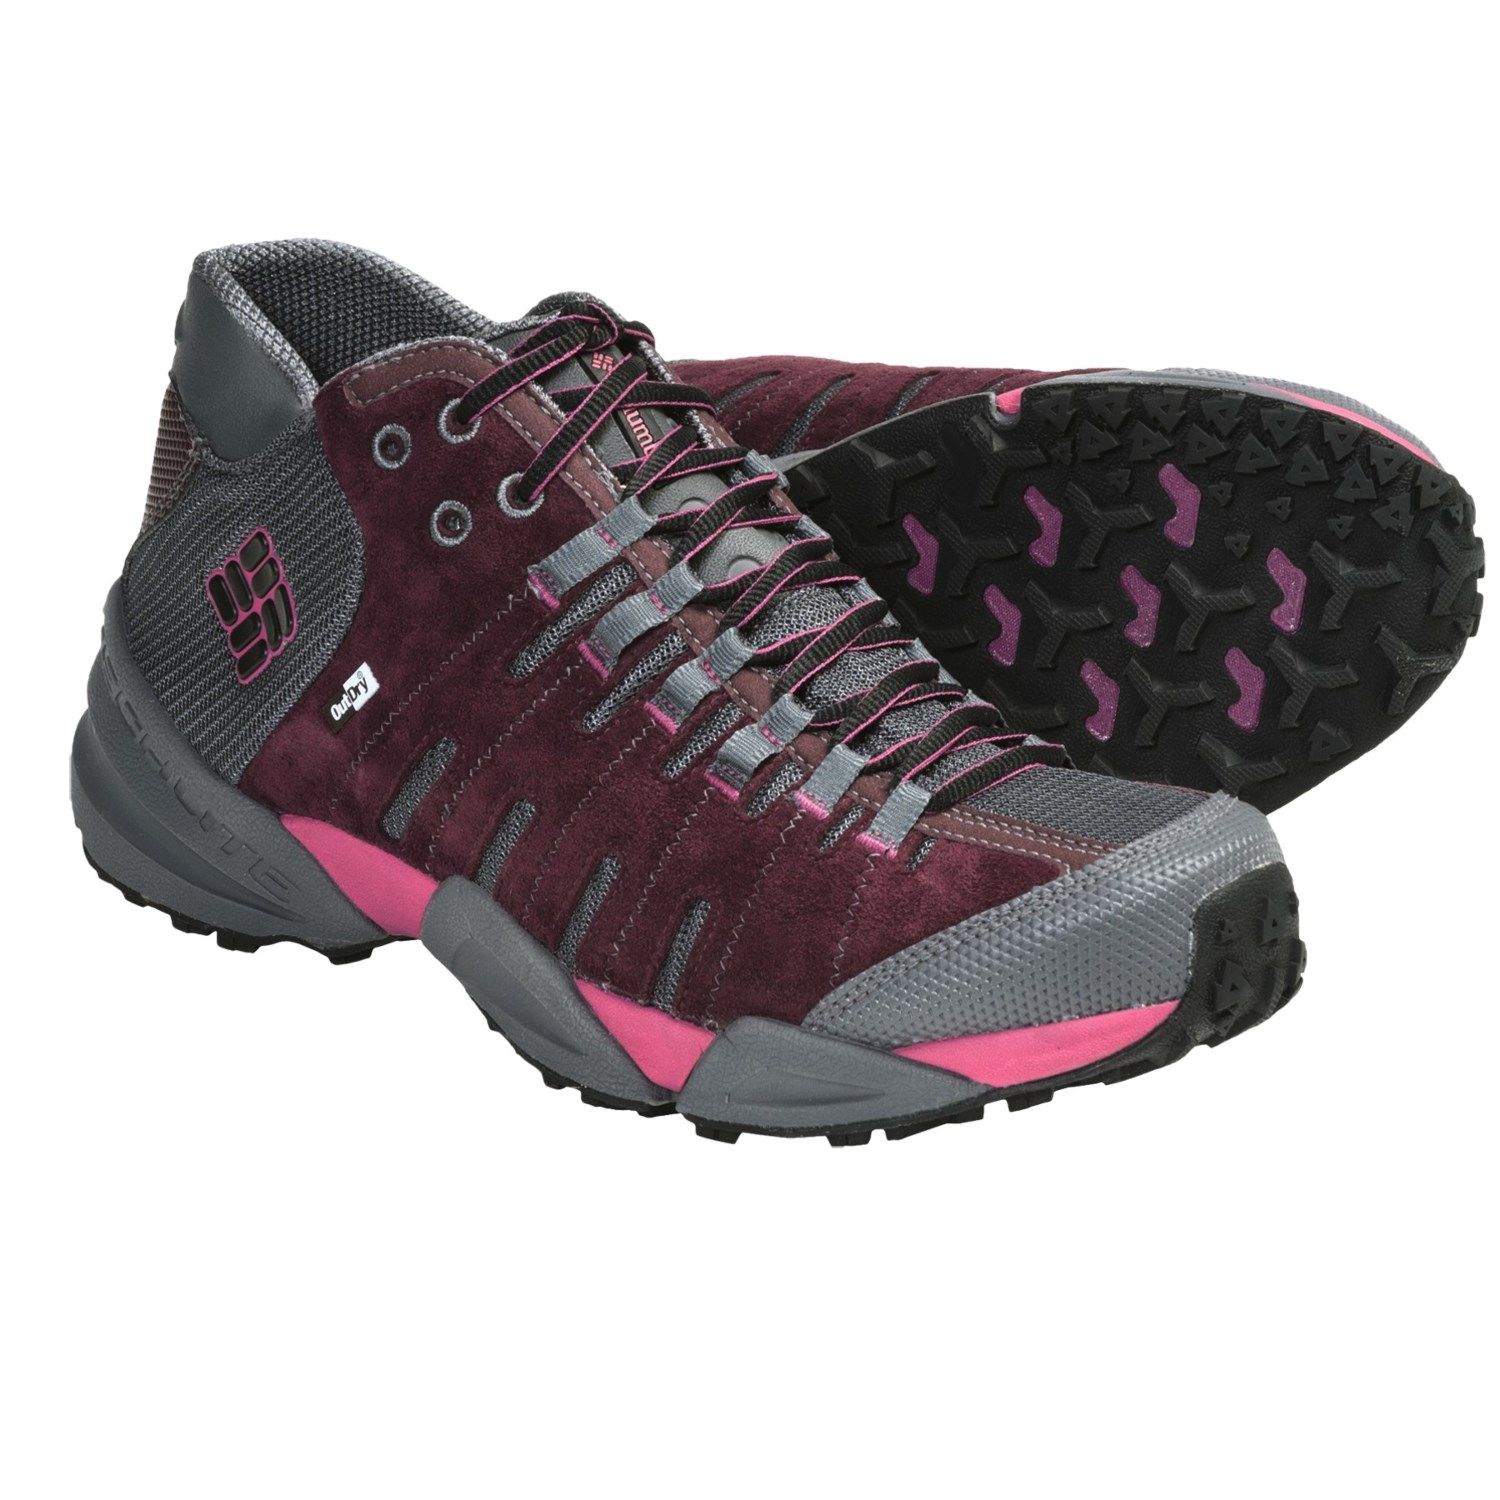 Mid OutDry^ Leather Hiking Boots (For Women) in Port Royal/Black